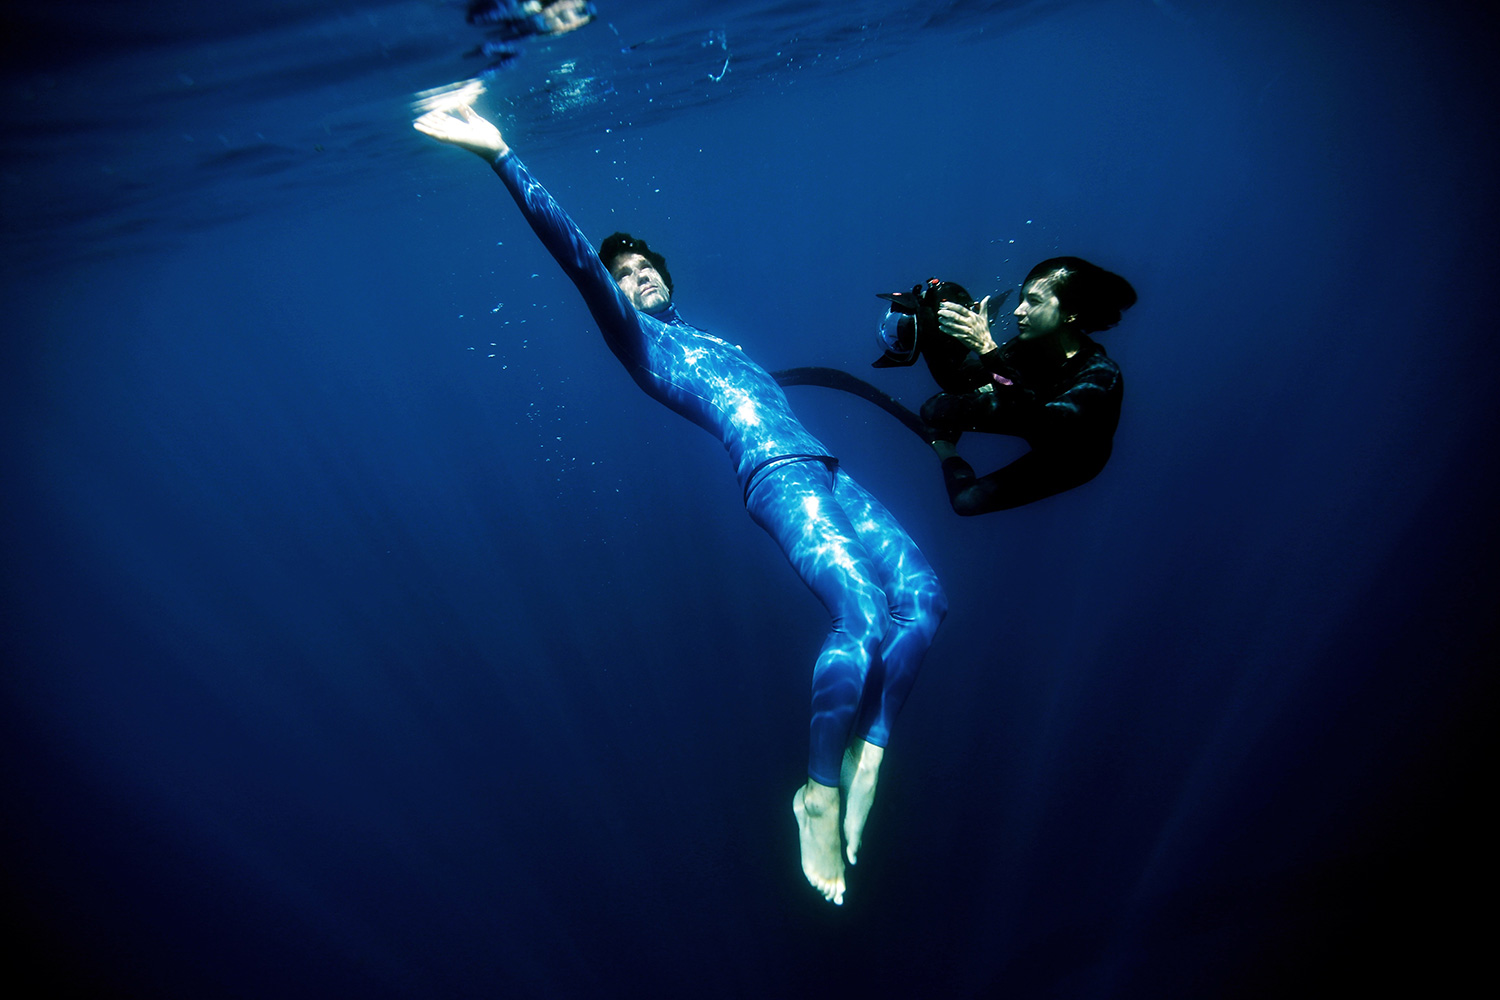 Ocean Gravity: When Free-Diving looks like floating on the moon